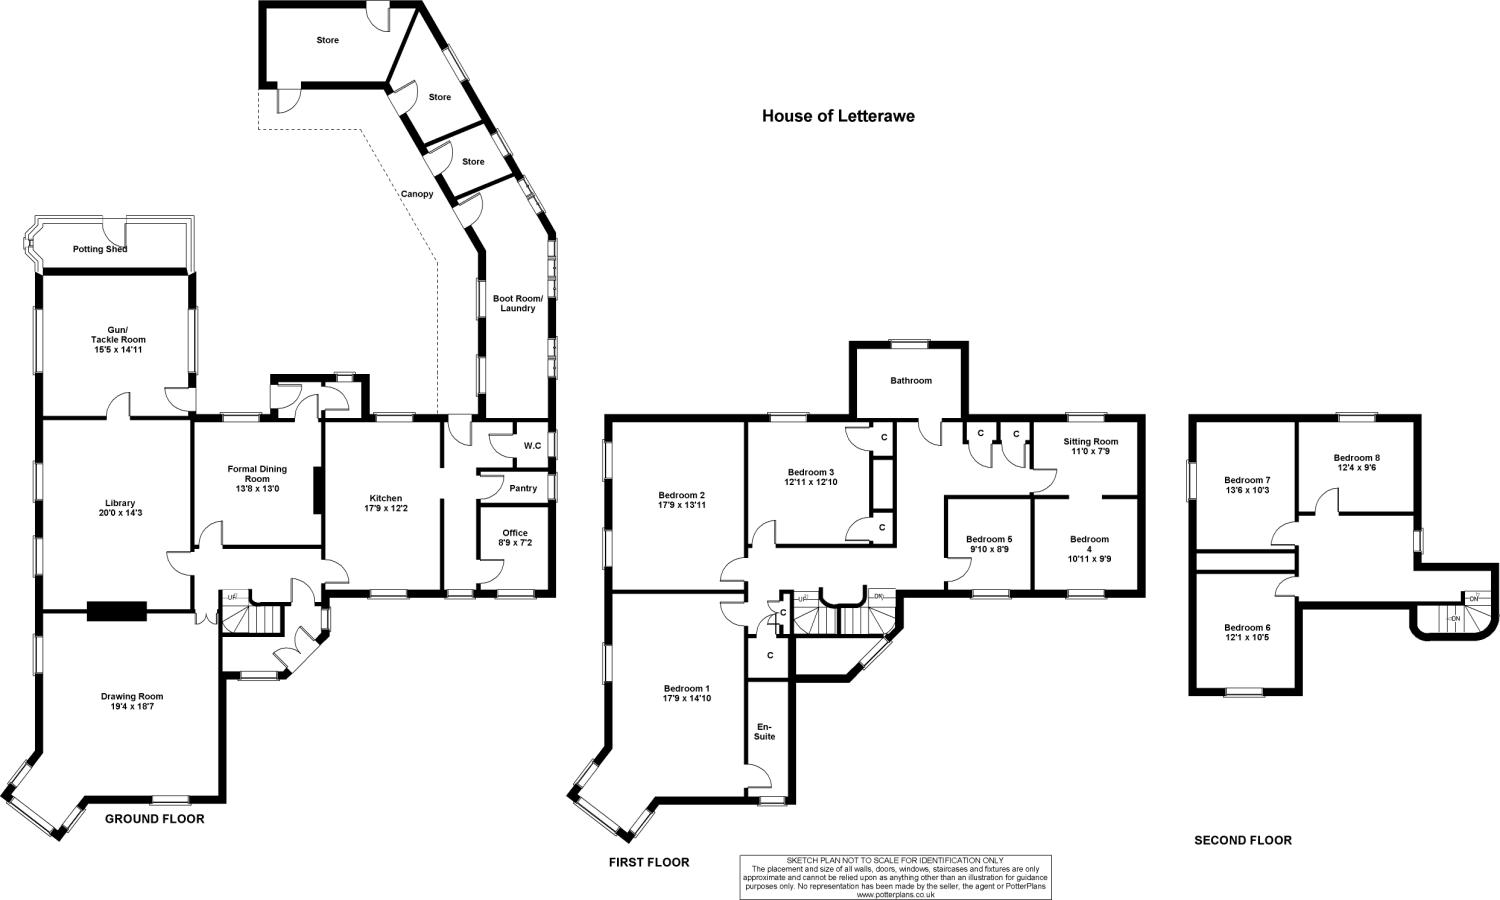 8 bedroom house plans   6f8021ac553b13d15536884e12864500c36b8d14jpg   6f8021ac553b13d15536884e12864500c36b8d14jpg. 8 Bedroom House Plans 8 Bedroom House Plans   Bedroom Style Ideas